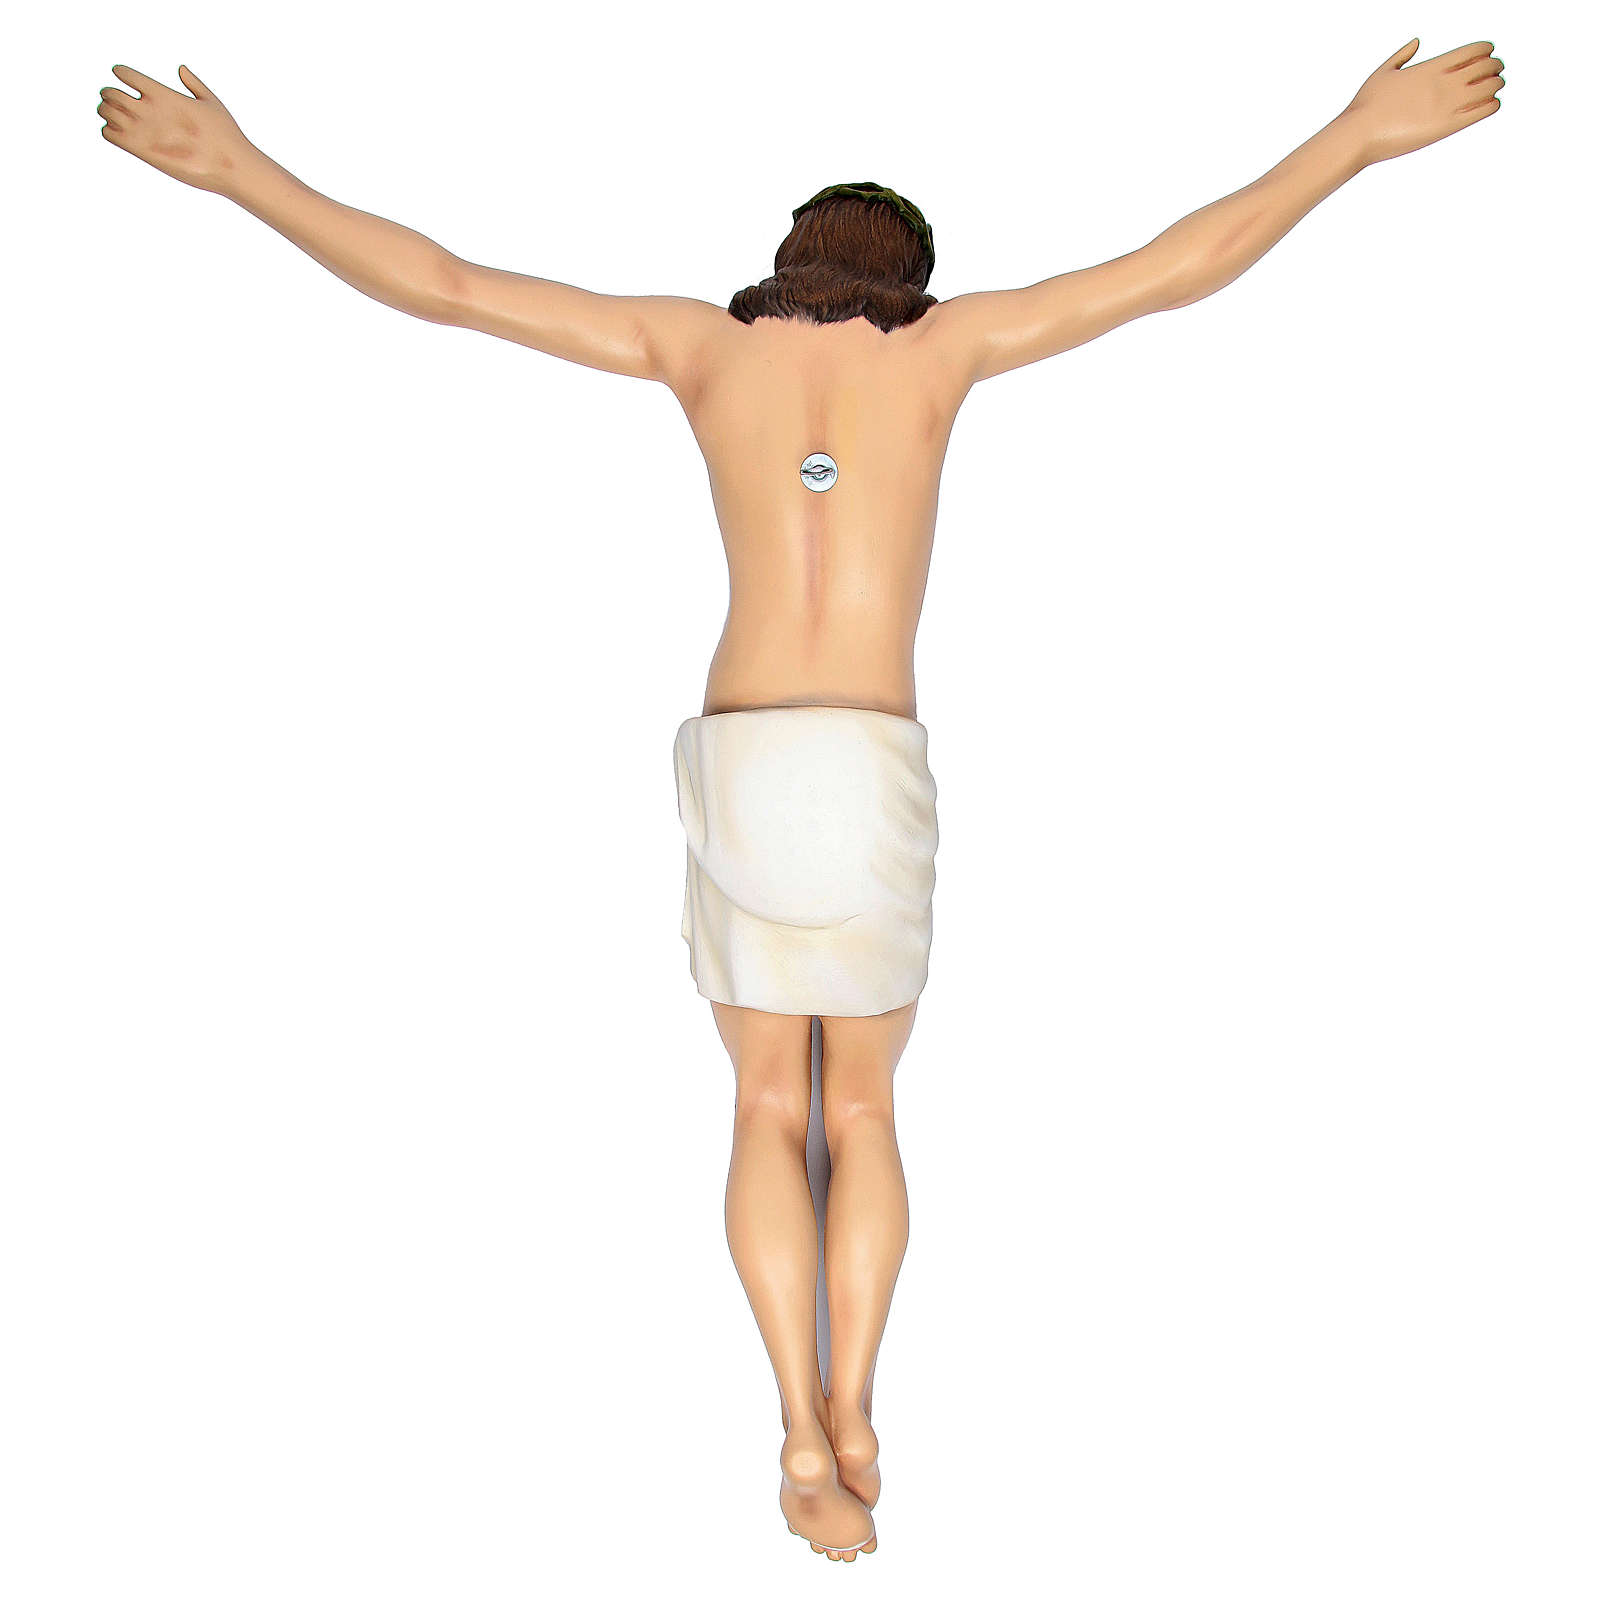 Body of Christ in painted fibreglass 90 cm for EXTERNAL USE 4